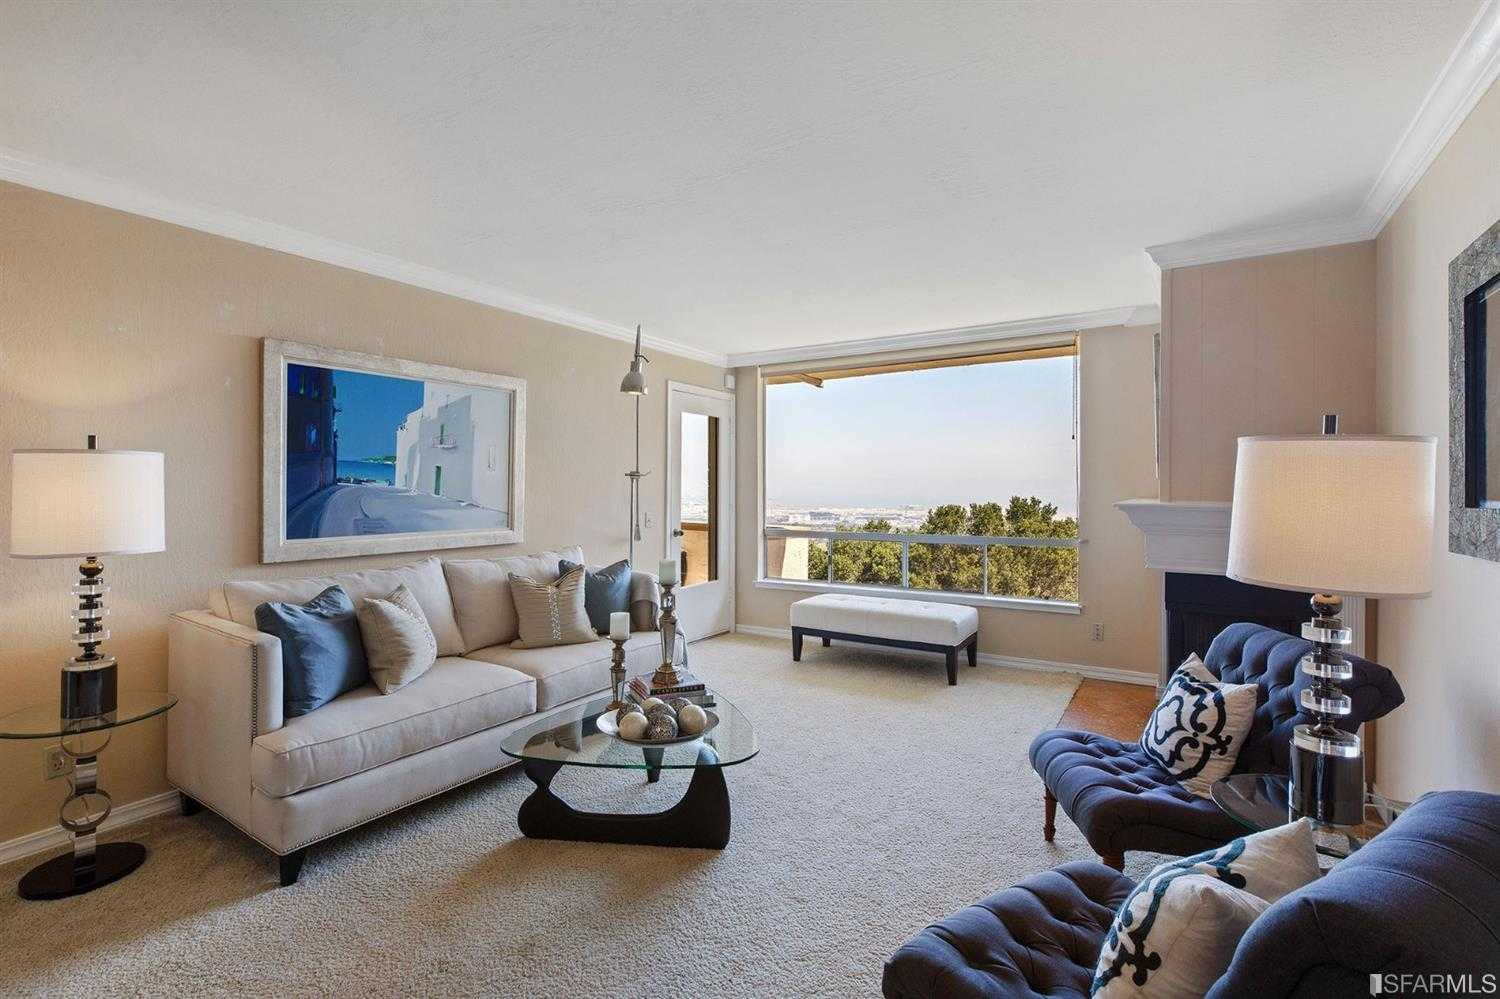 $998,000 - 3Br/2Ba -  for Sale in Millbrae